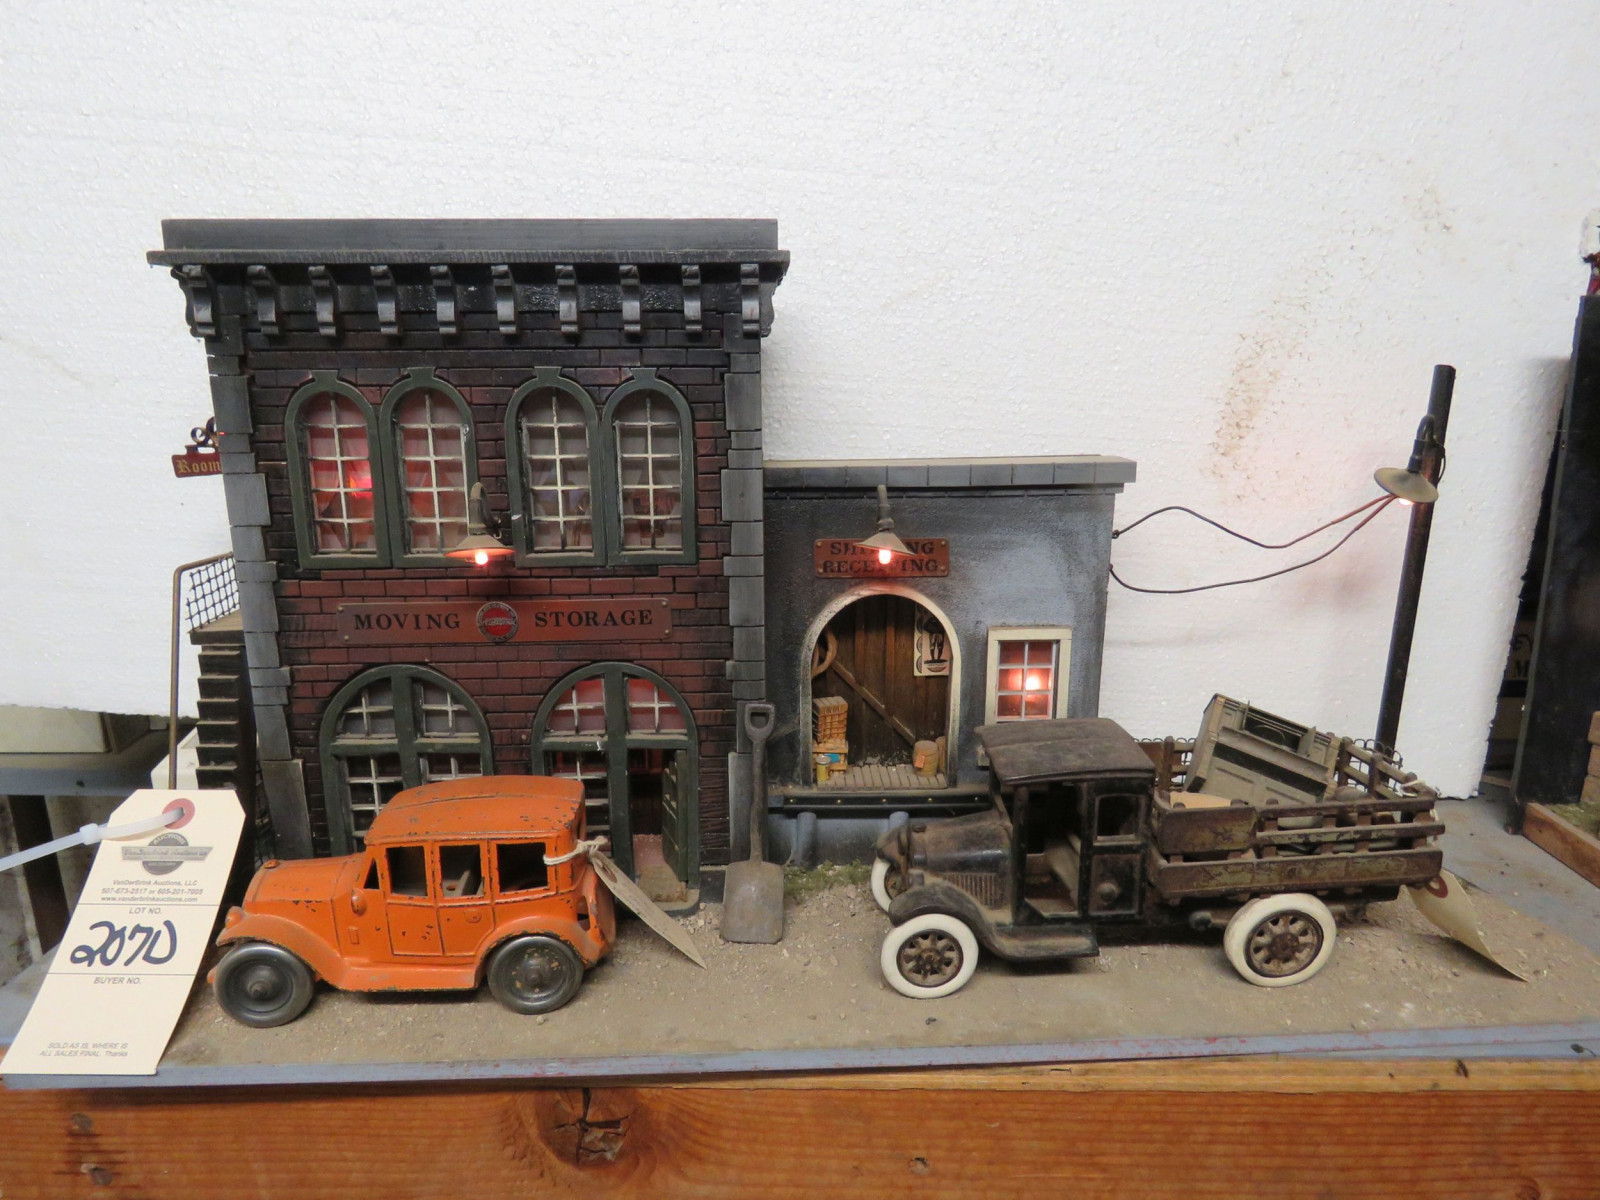 City Street View Diorama with Vintage Cast Iron Toys - Image 1